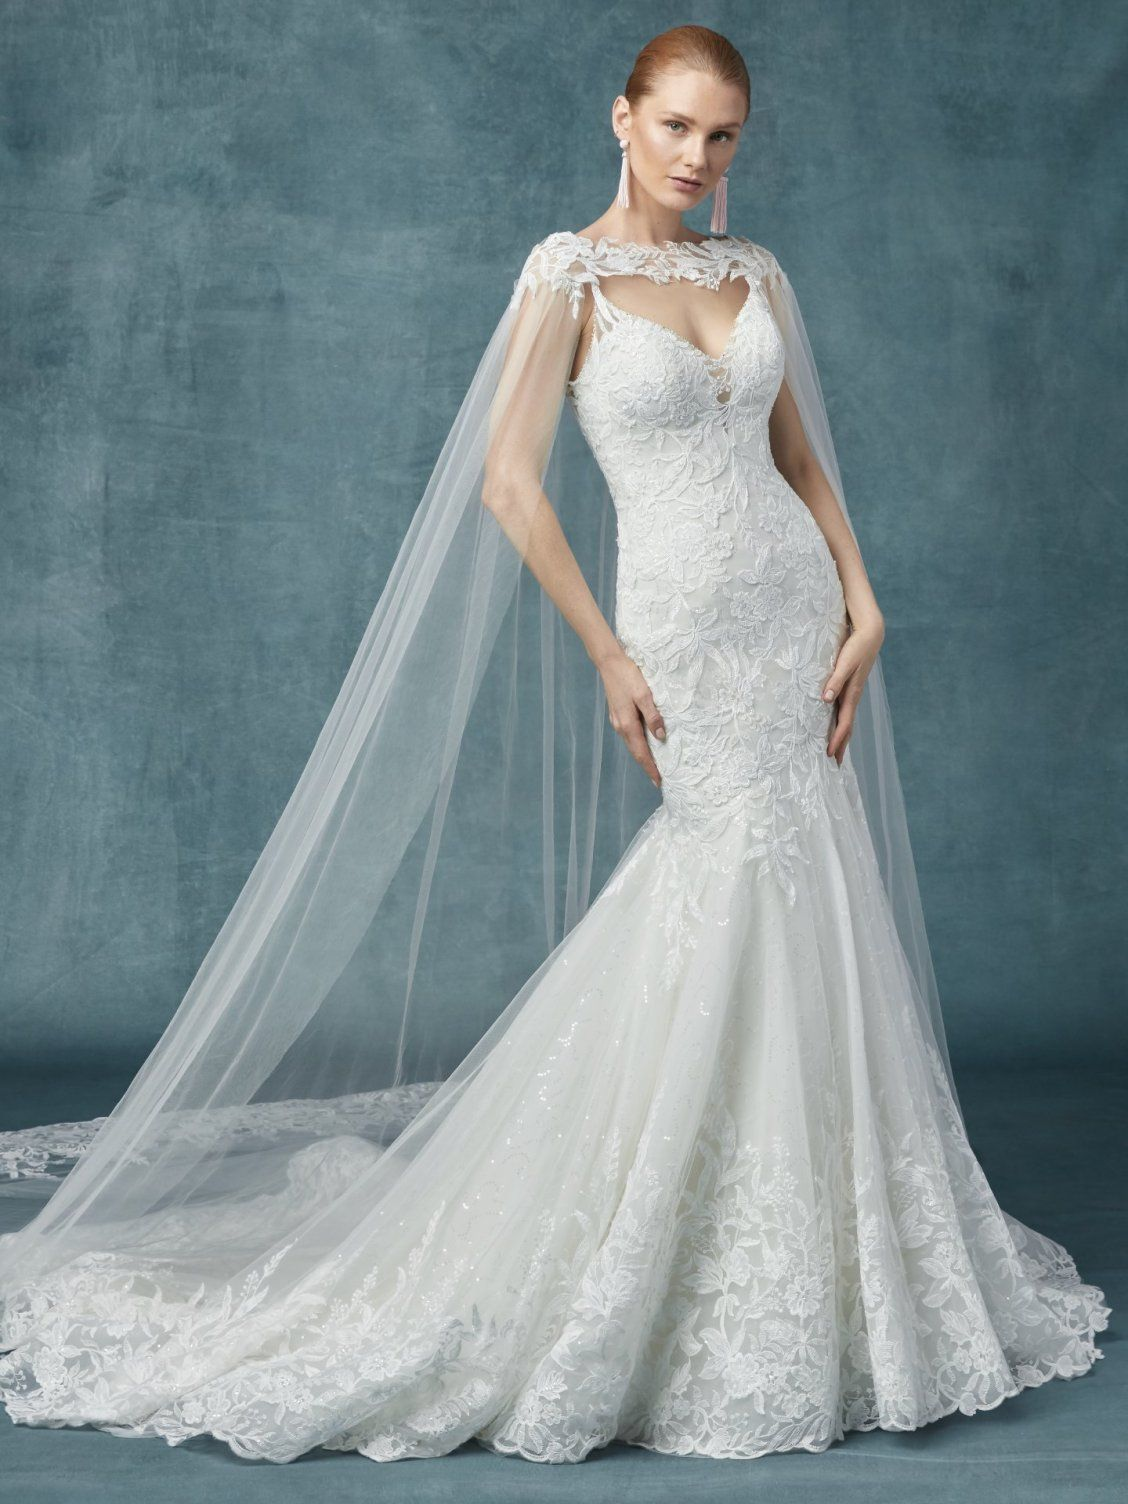 a62cdc293fb94 ... wedding gown!  Sapphire by  MaggieSottero is so regal